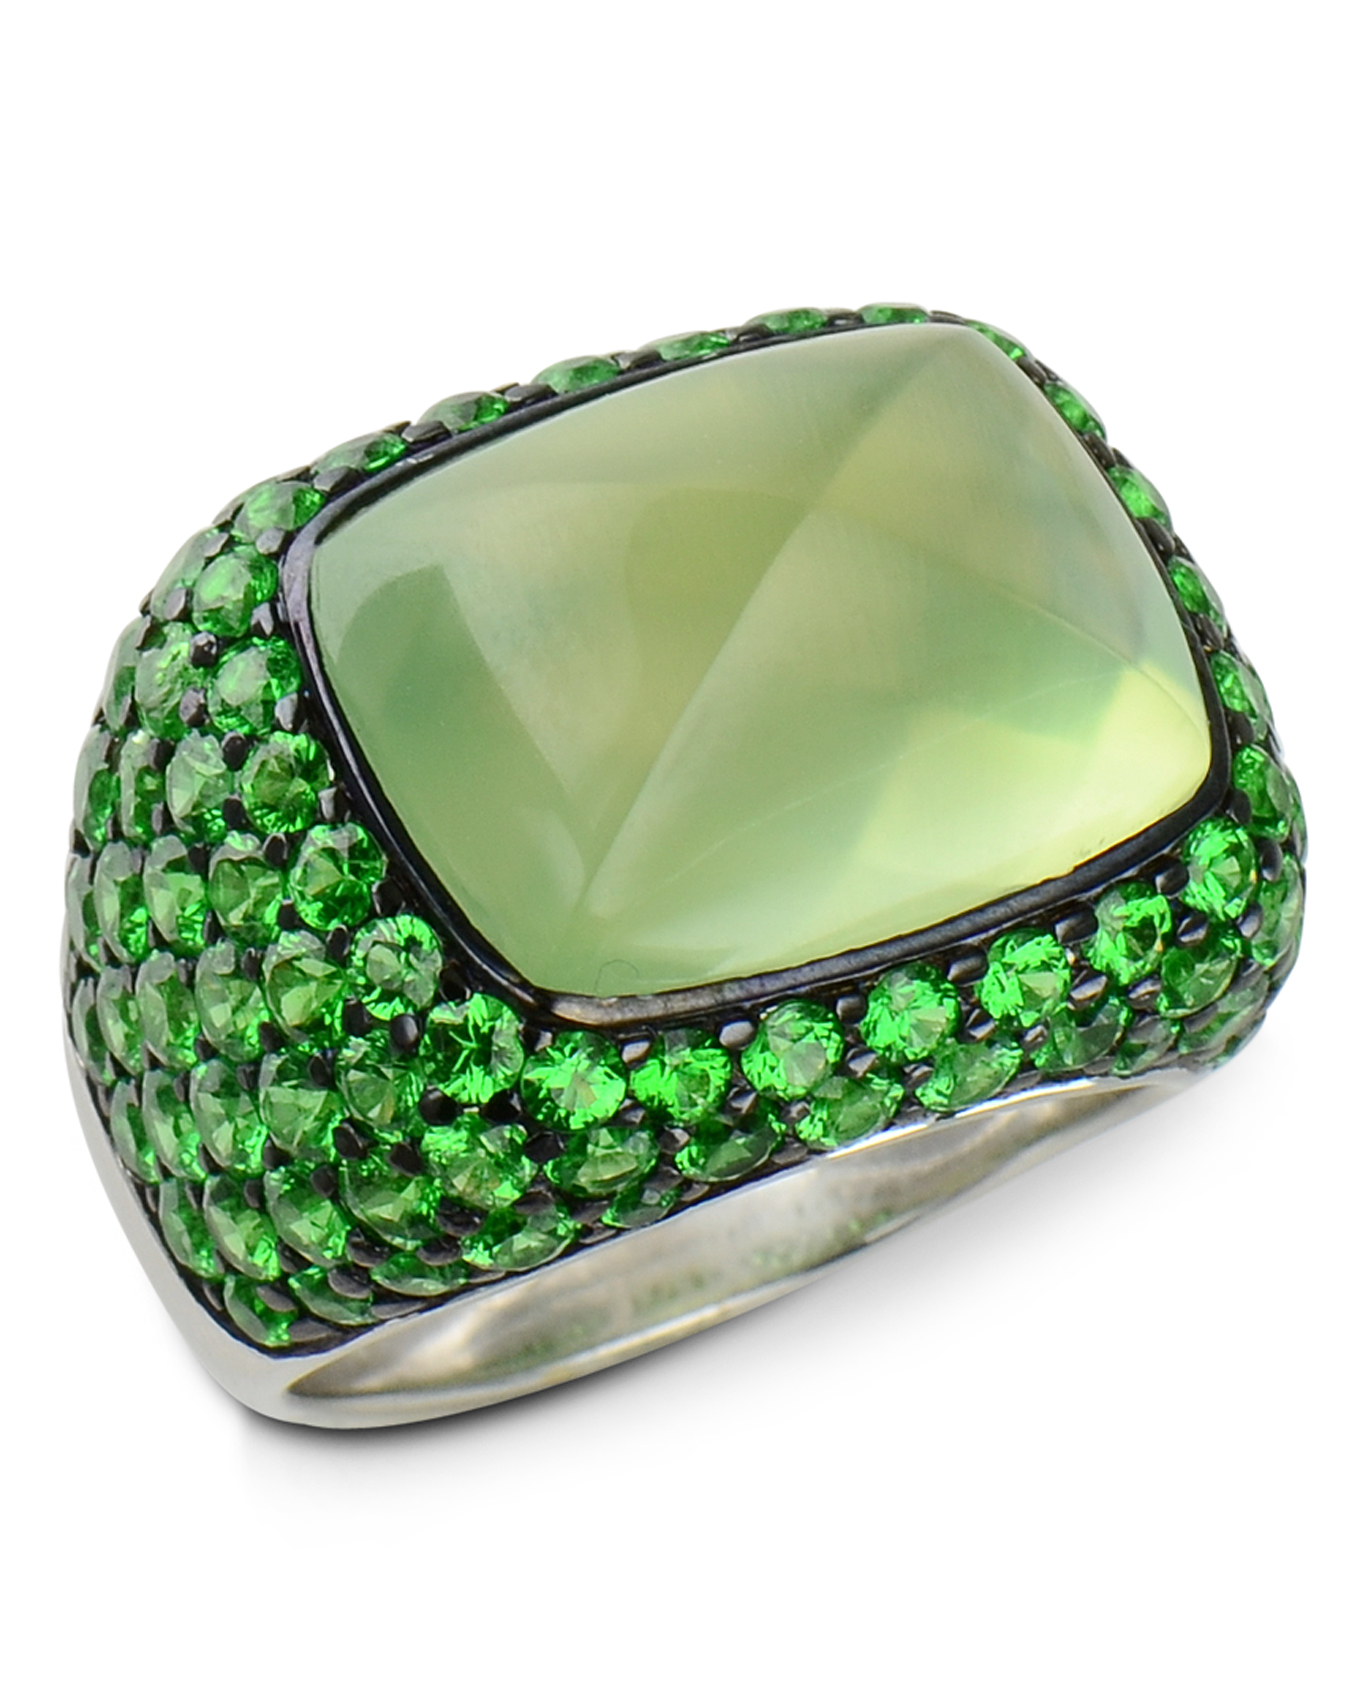 garnet tsavorite rings jewelers dsc of one plante ring kind a products bold